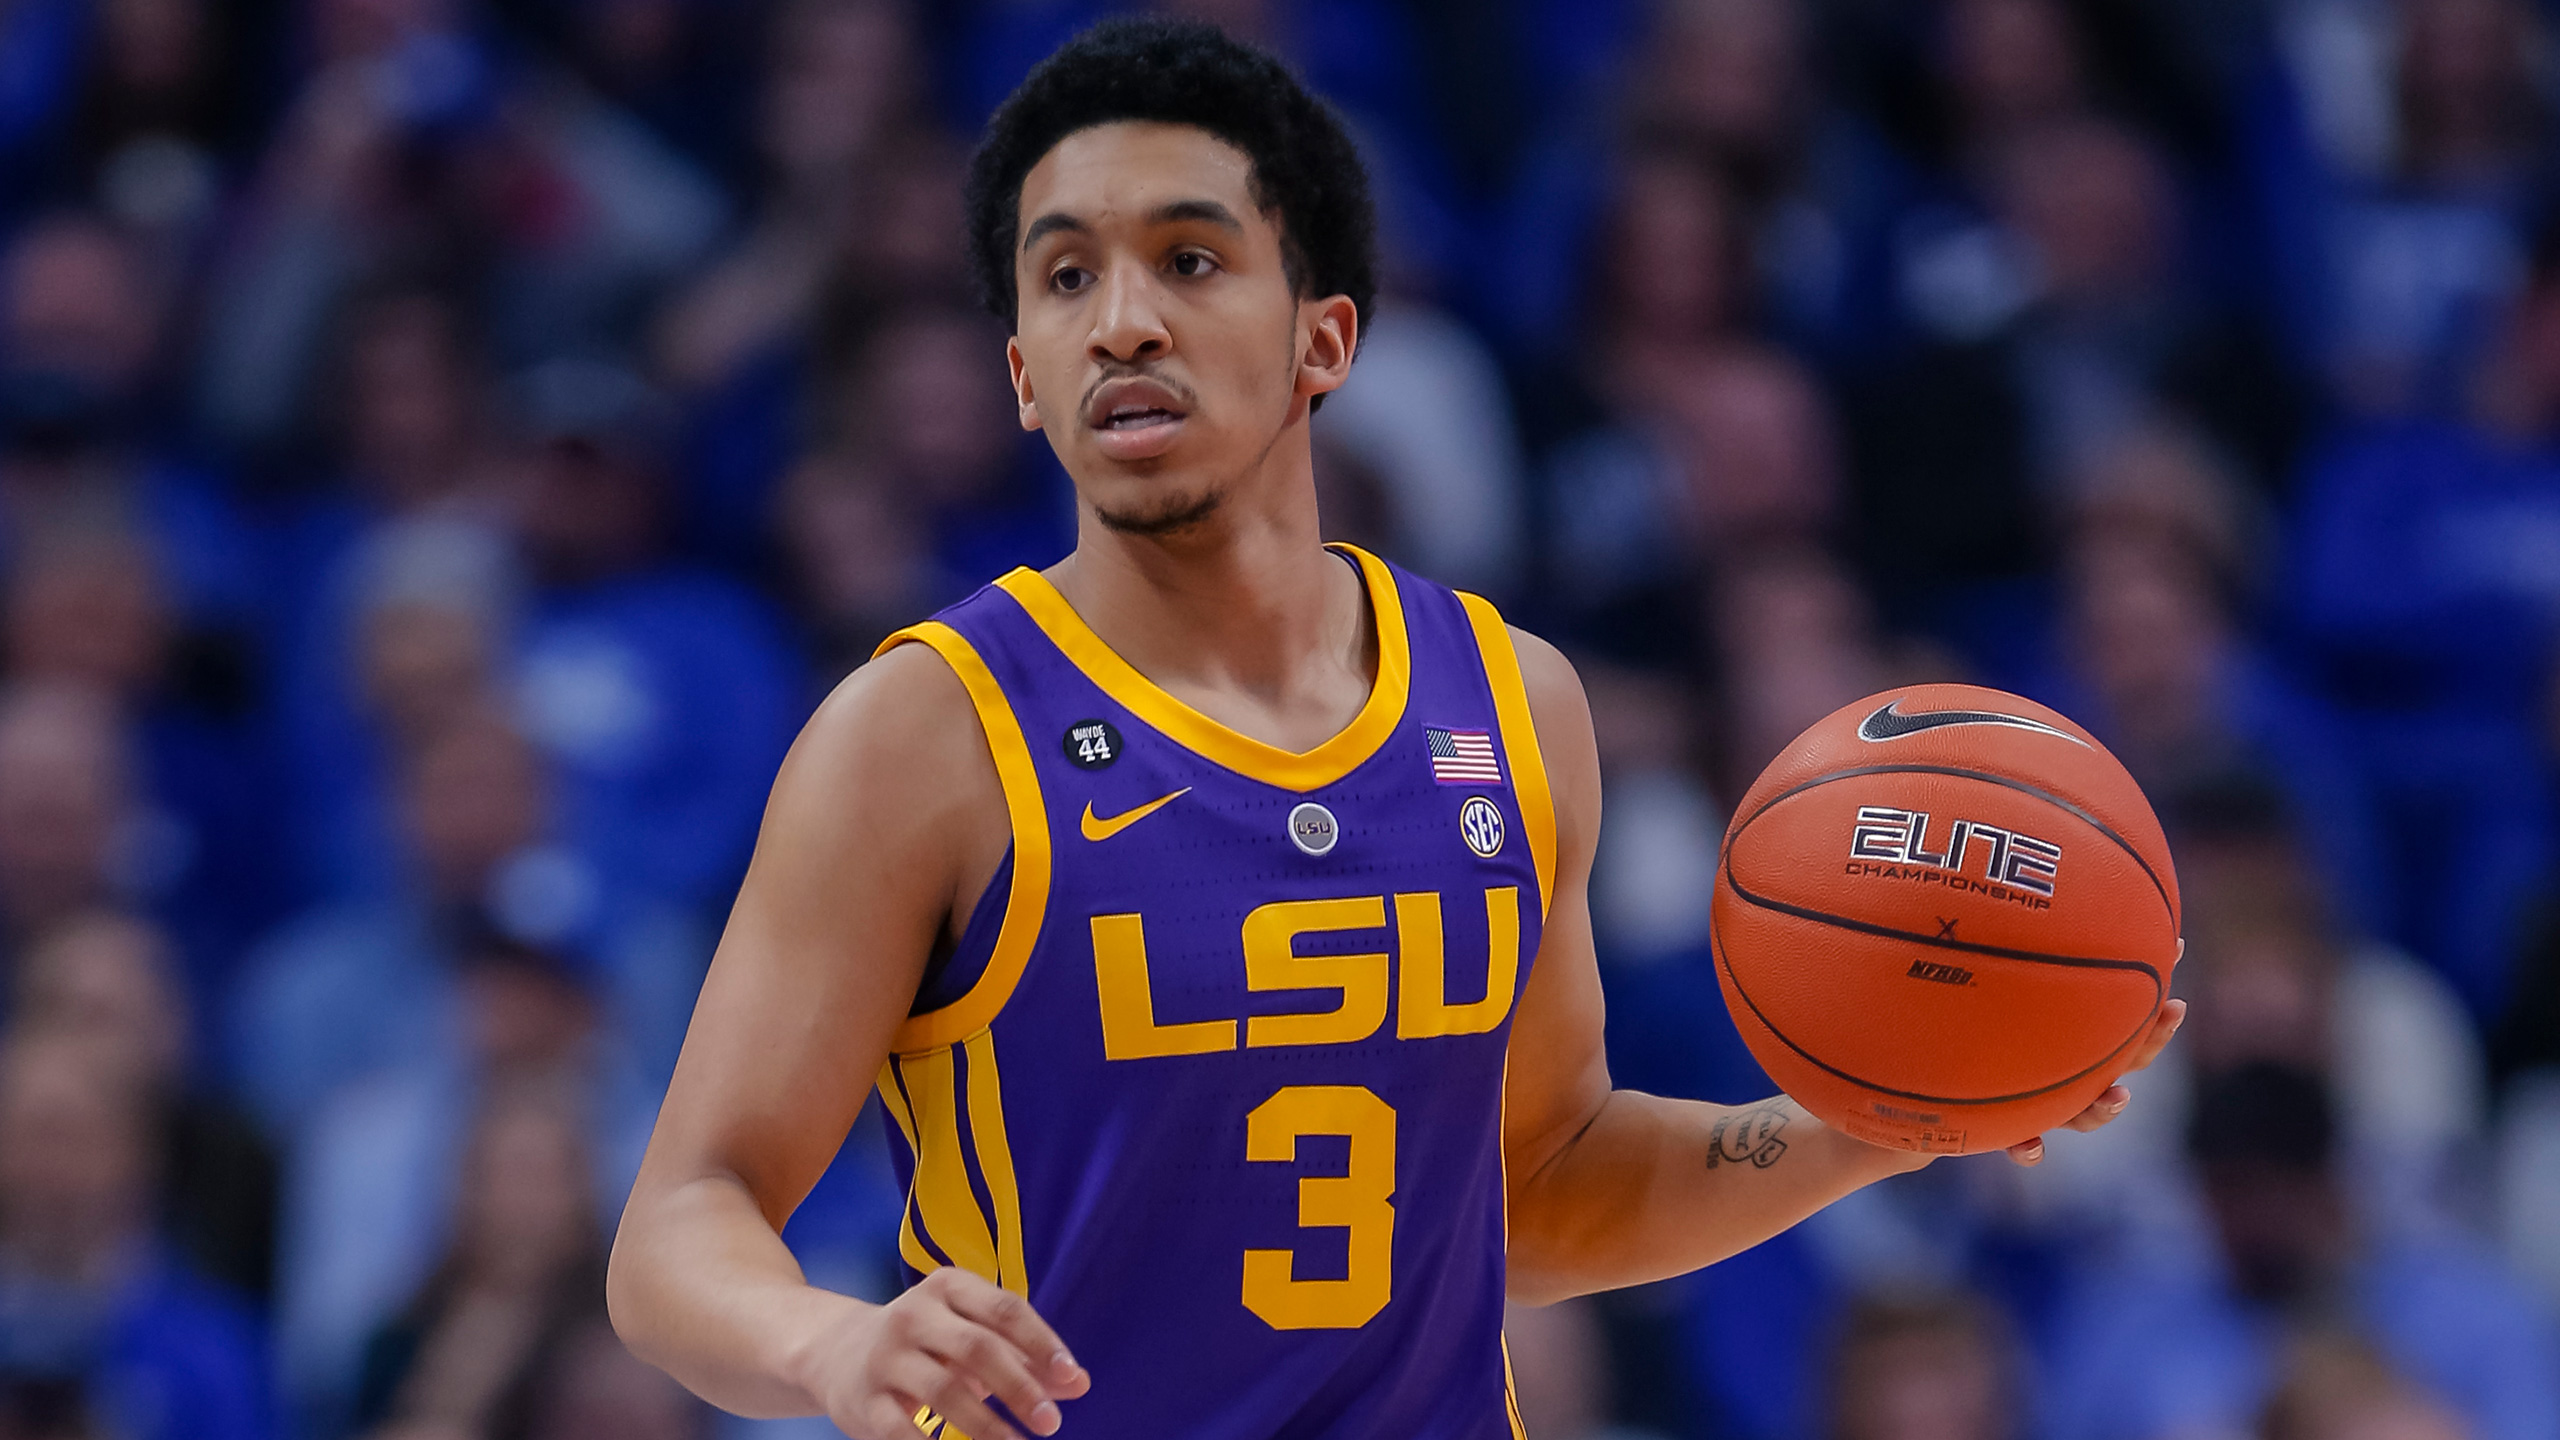 Florida vs. #13 LSU (M Basketball)